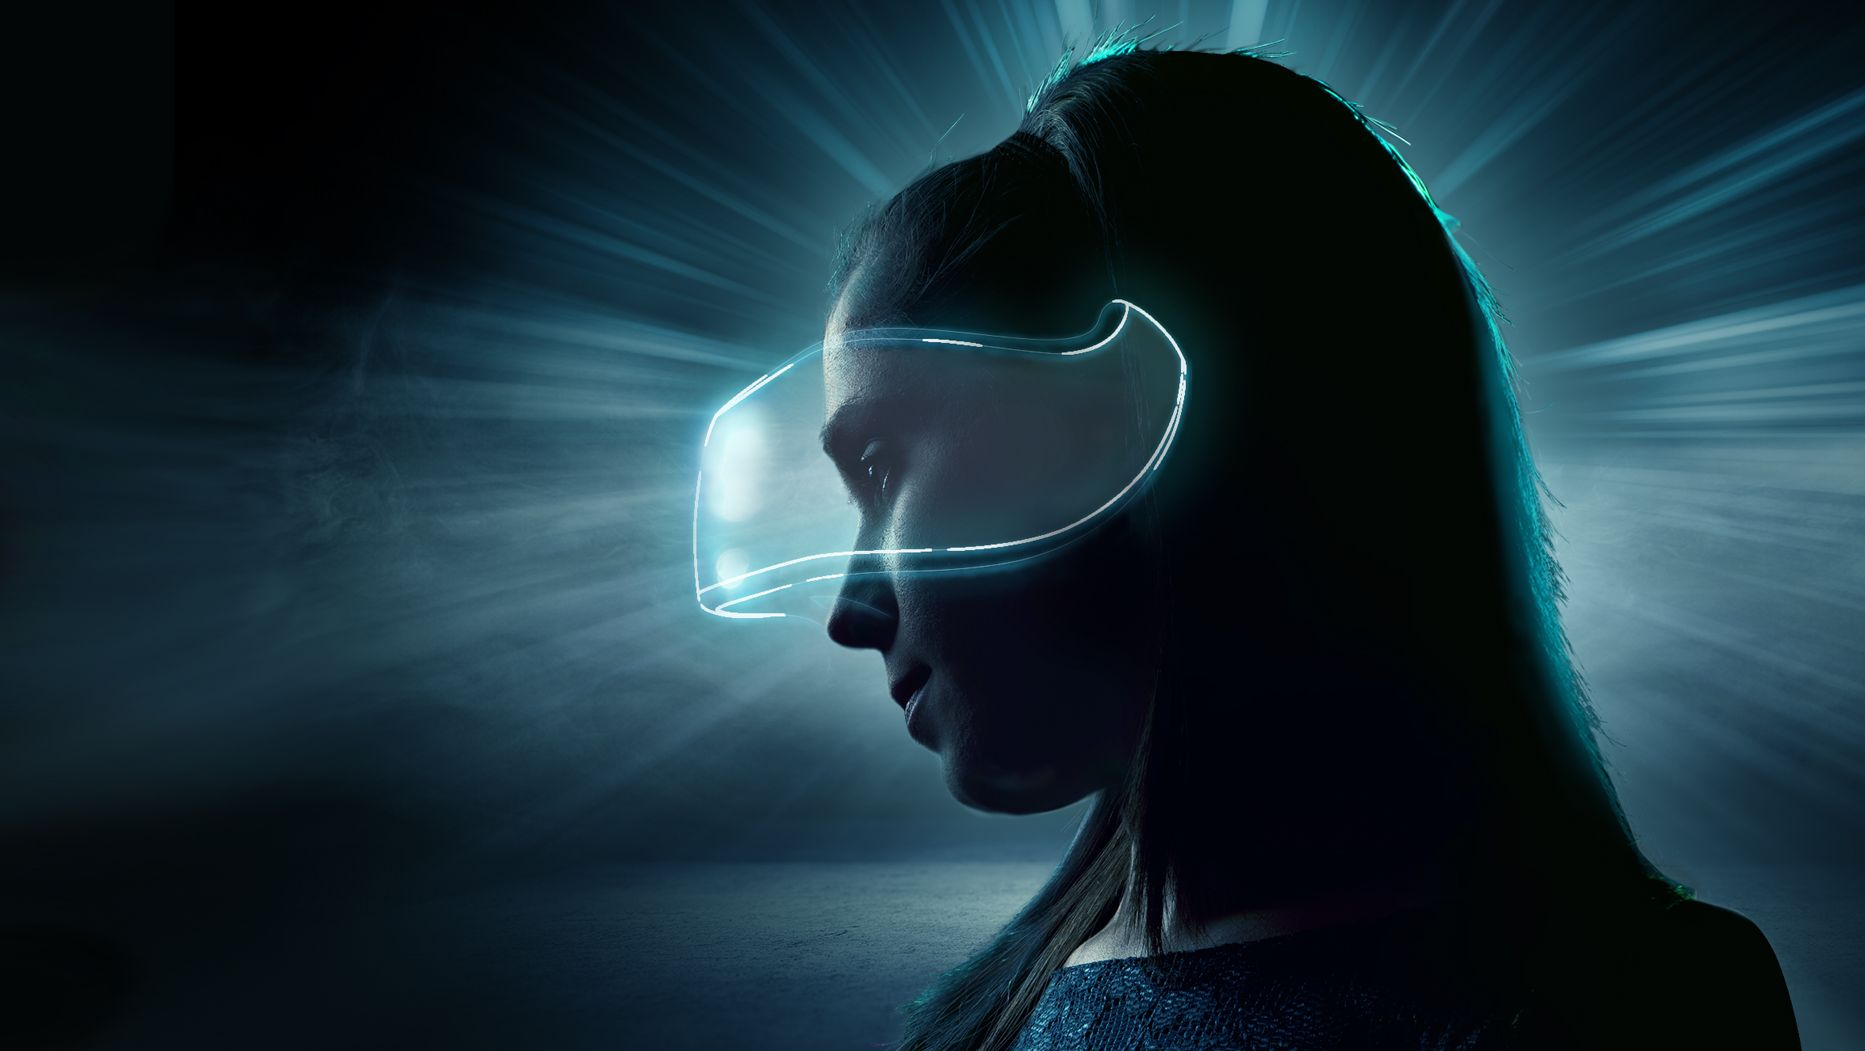 HTC and Lenovo are working on VR helmets, or the PC and smartphones